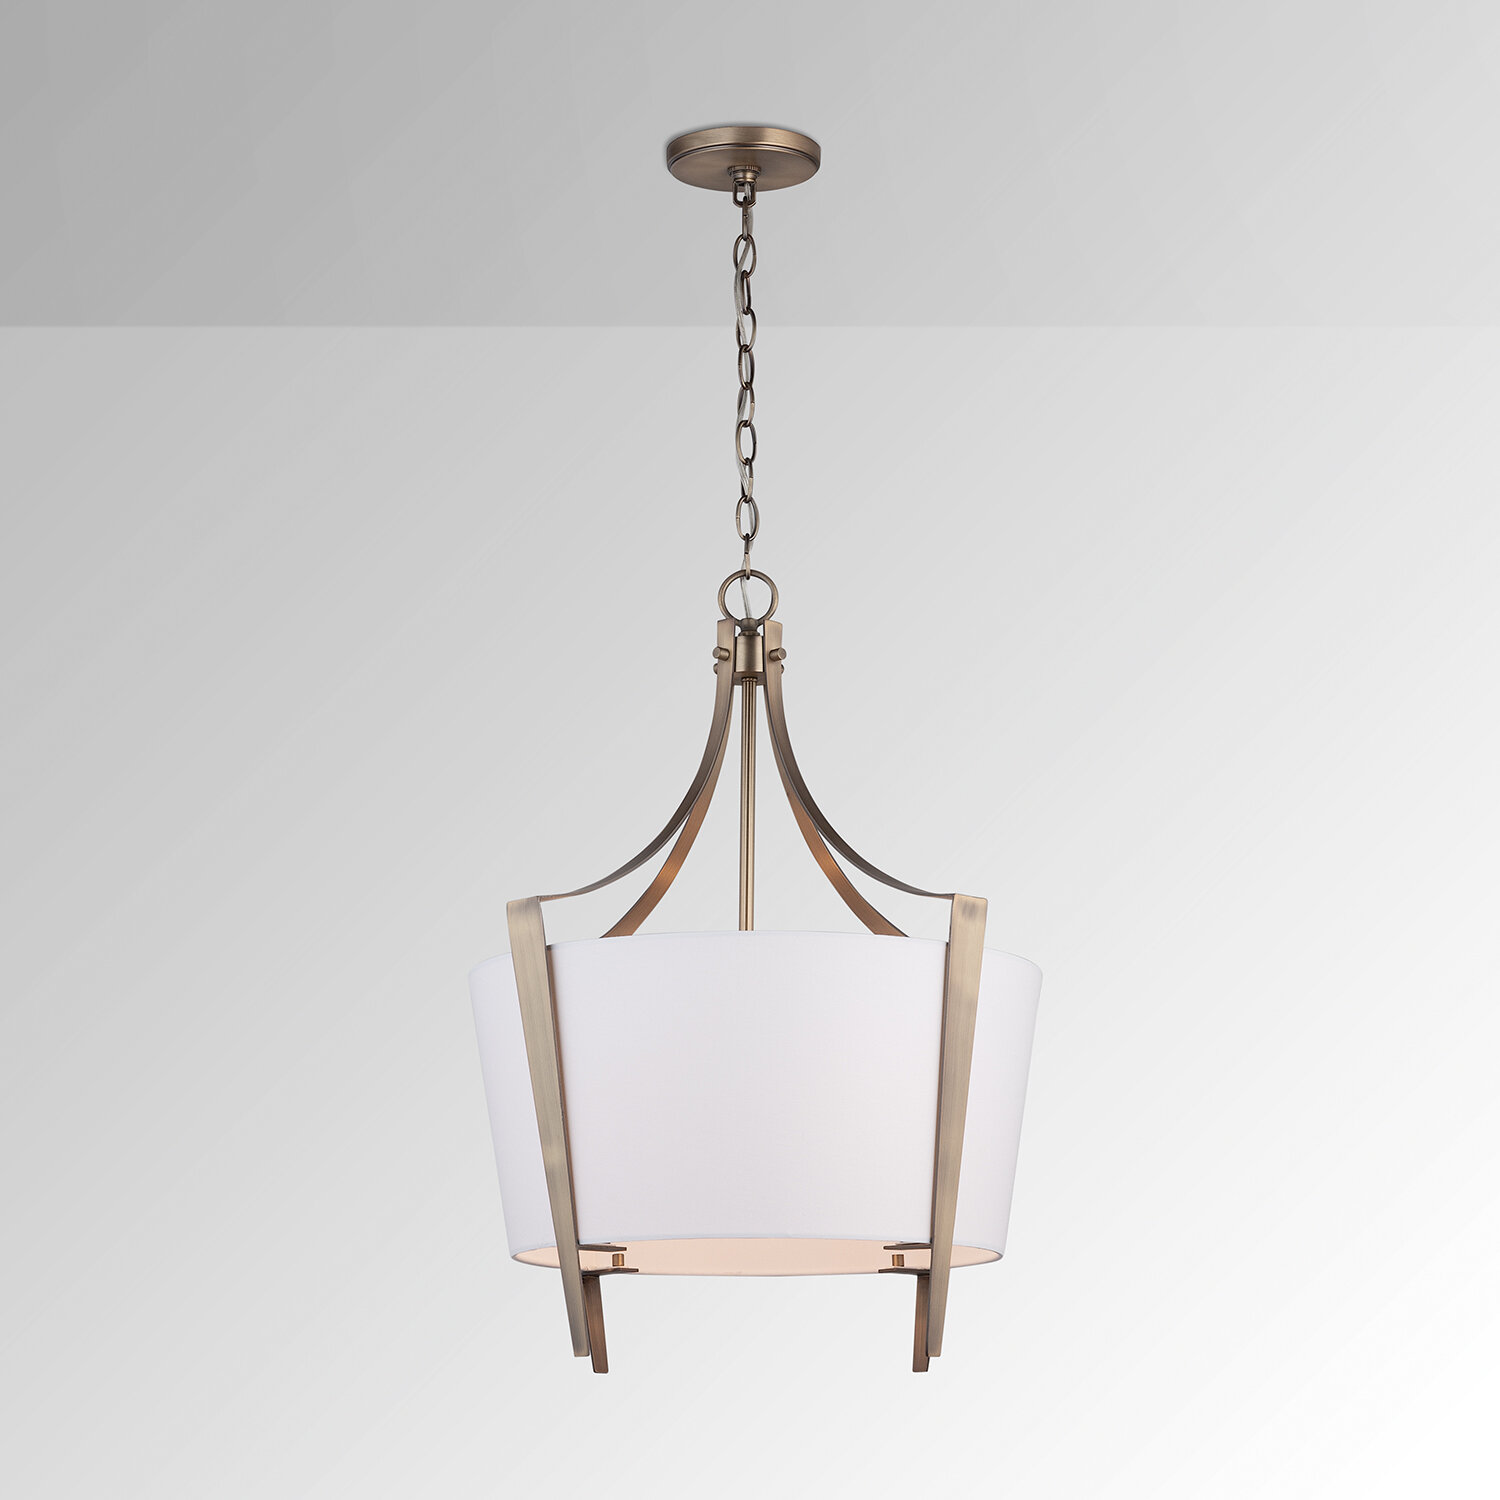 Brass Fabric Pendant Lighting You Ll Love In 2021 Wayfair